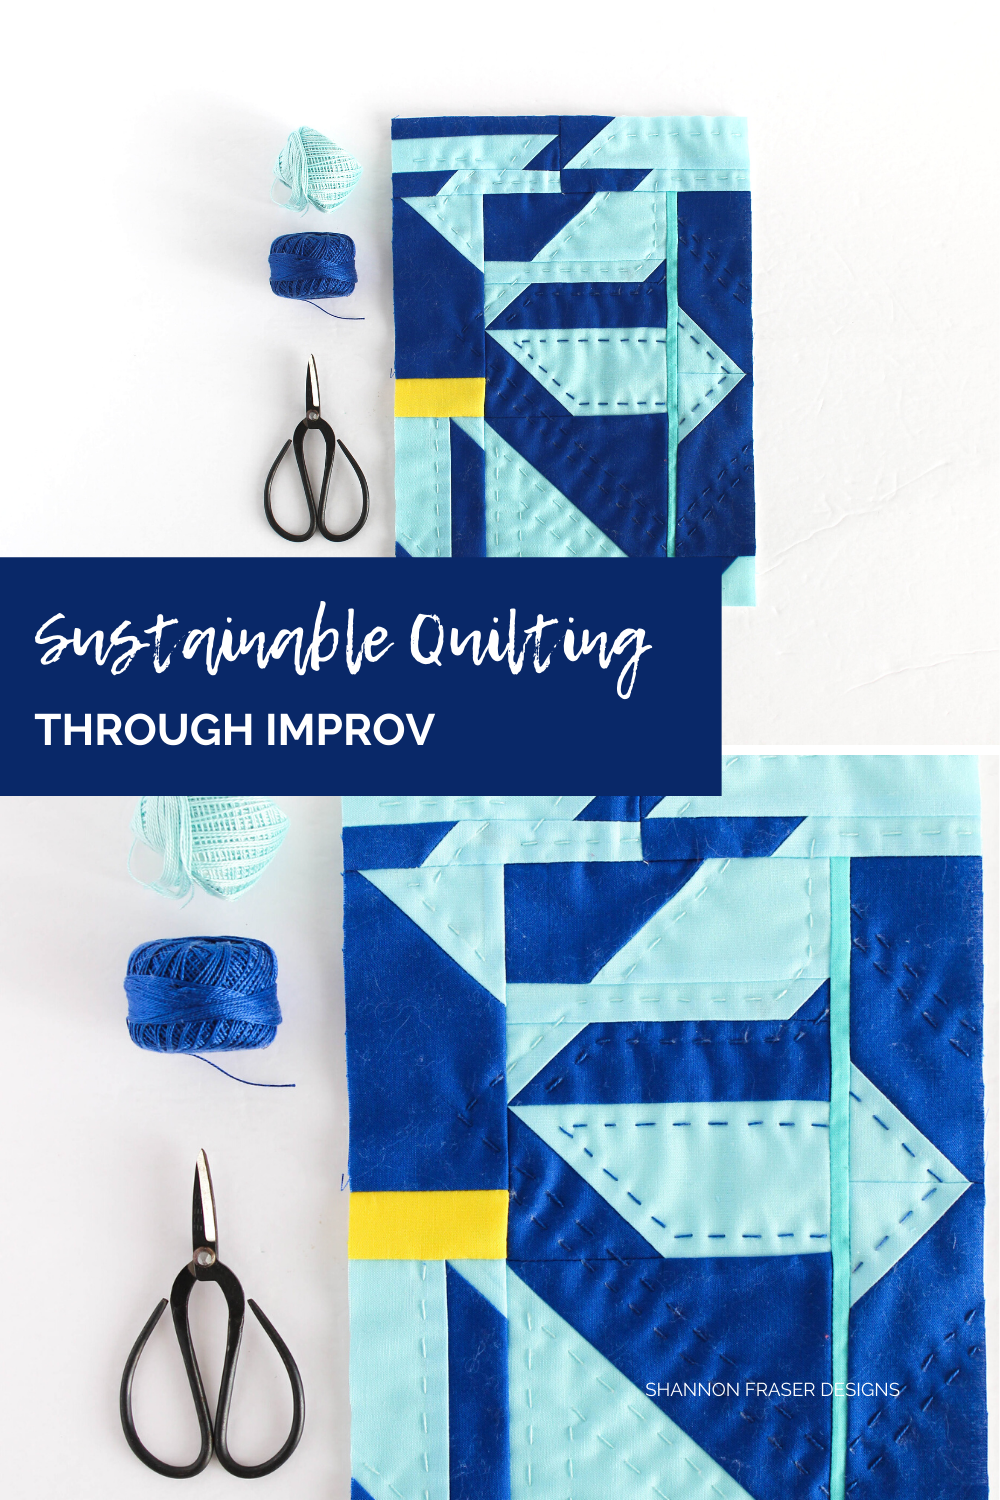 Modern improv mini art quilt featuring blue and yellow fabric scraps leftover from the Double Windmill quilt. Bring sustainability into your quilt practice with improv | Shannon Fraser Designs #modernart #miniquilt #handquilted